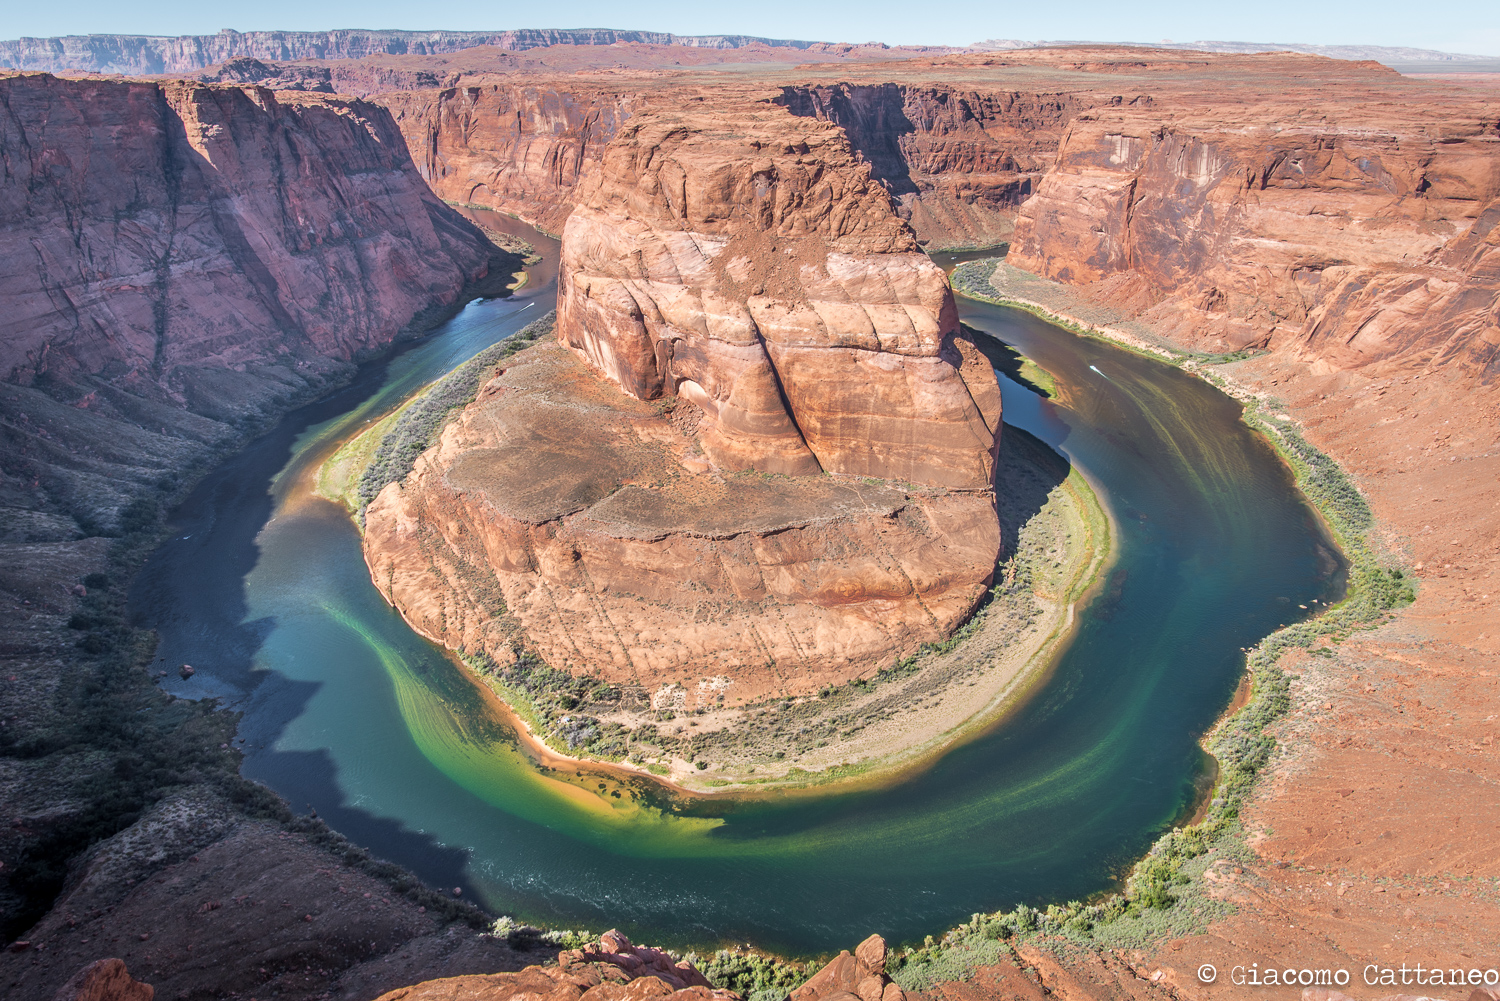 Horseshoe Bend, Colorado River - ISO 50, 2mm, f/16, 1/40 sec